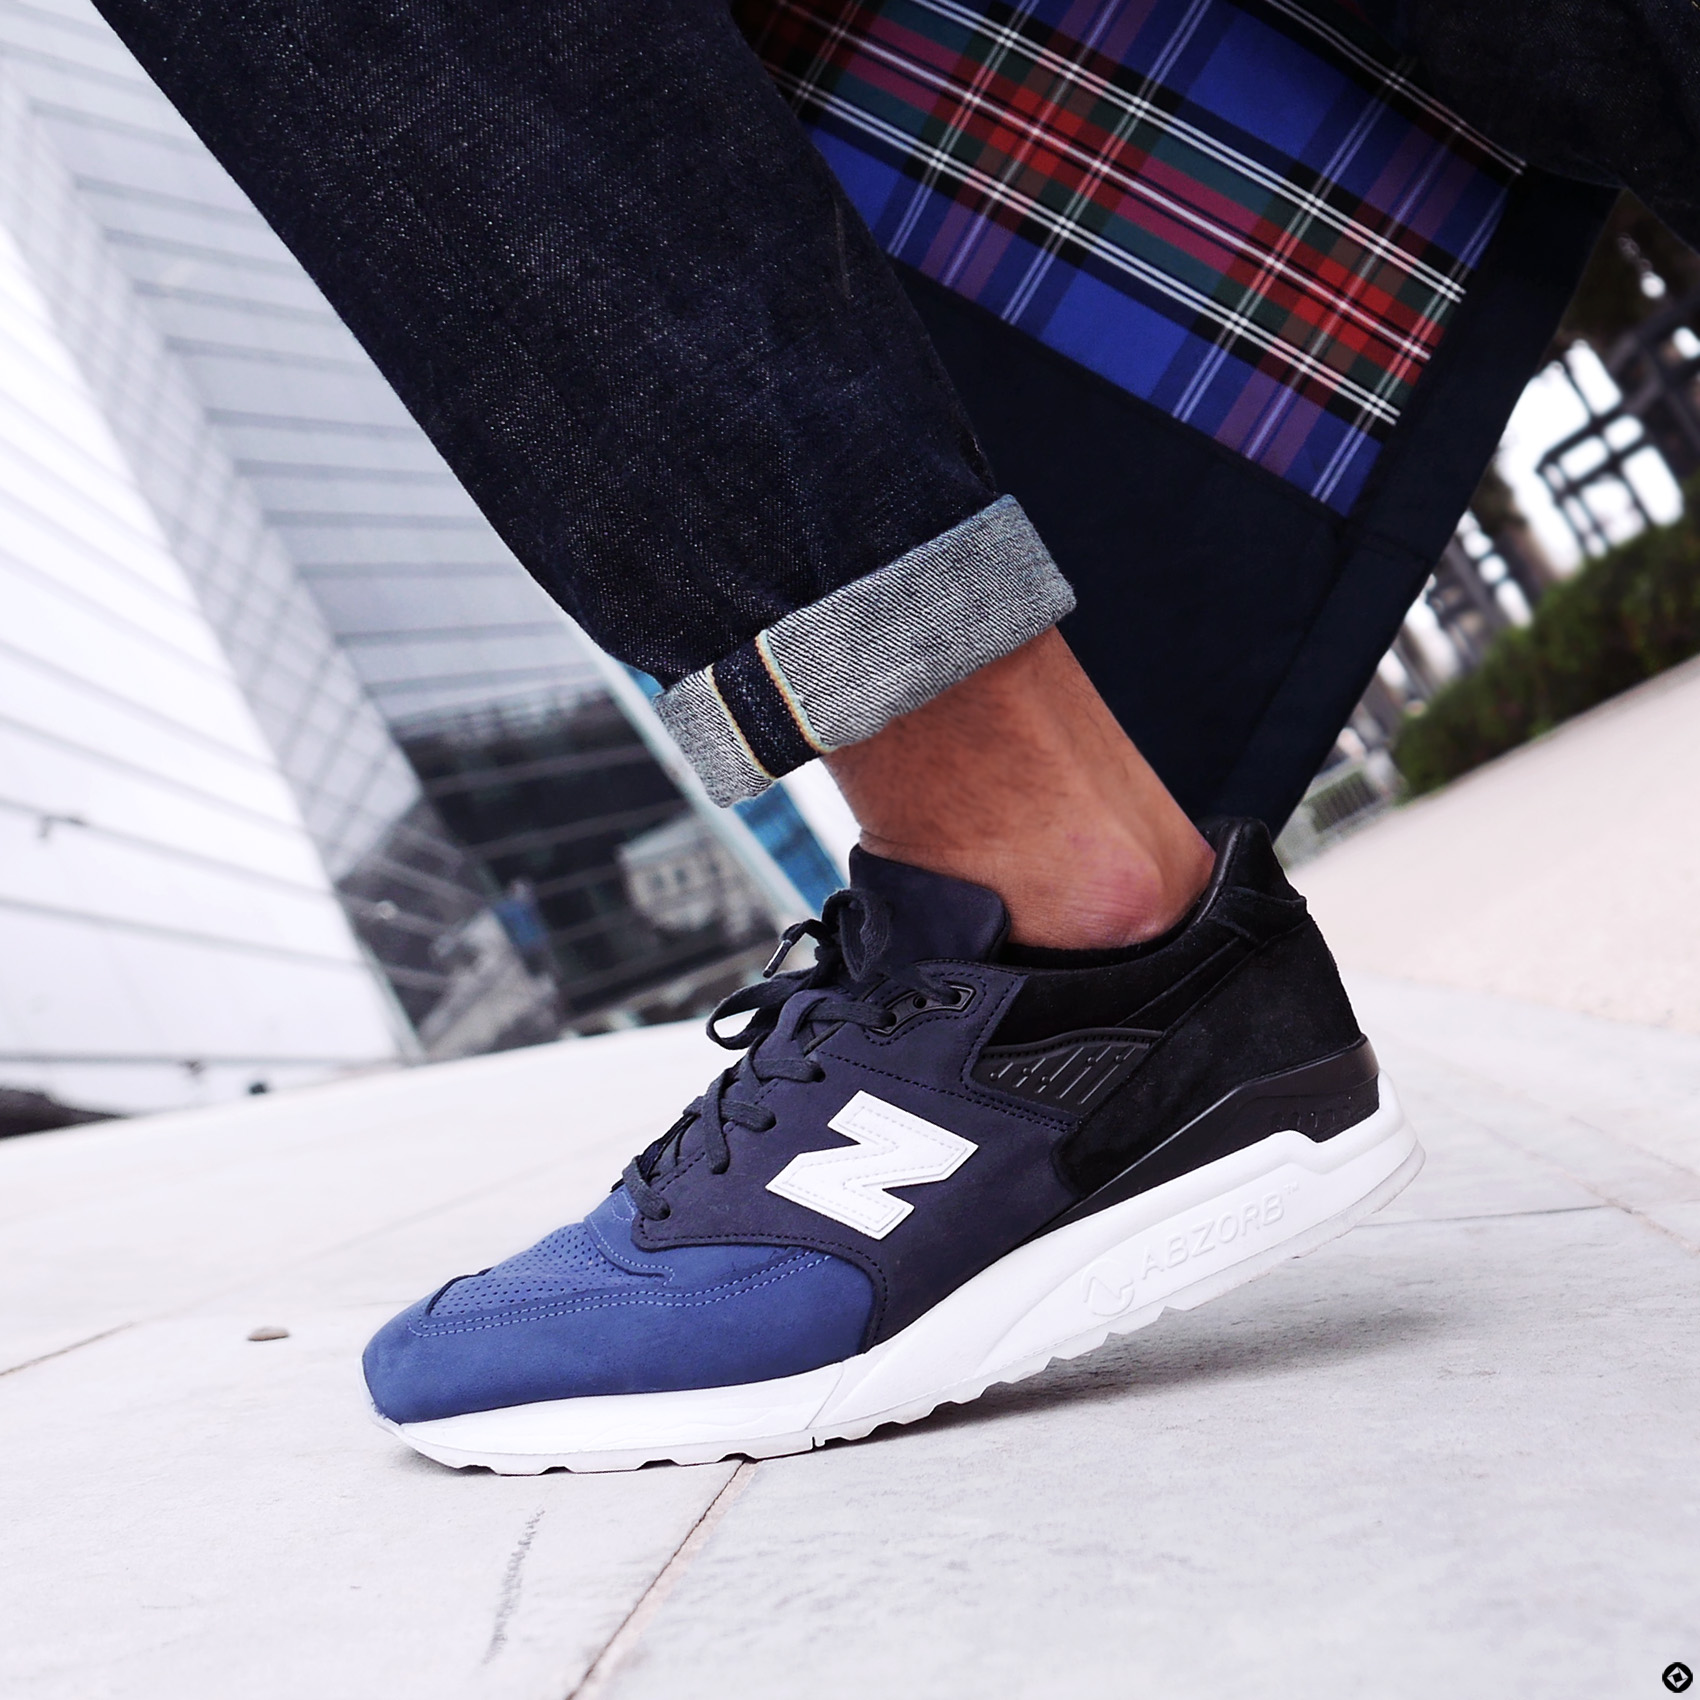 Le Trench UNIQLO x J.W. ANDERSON et new balance kith